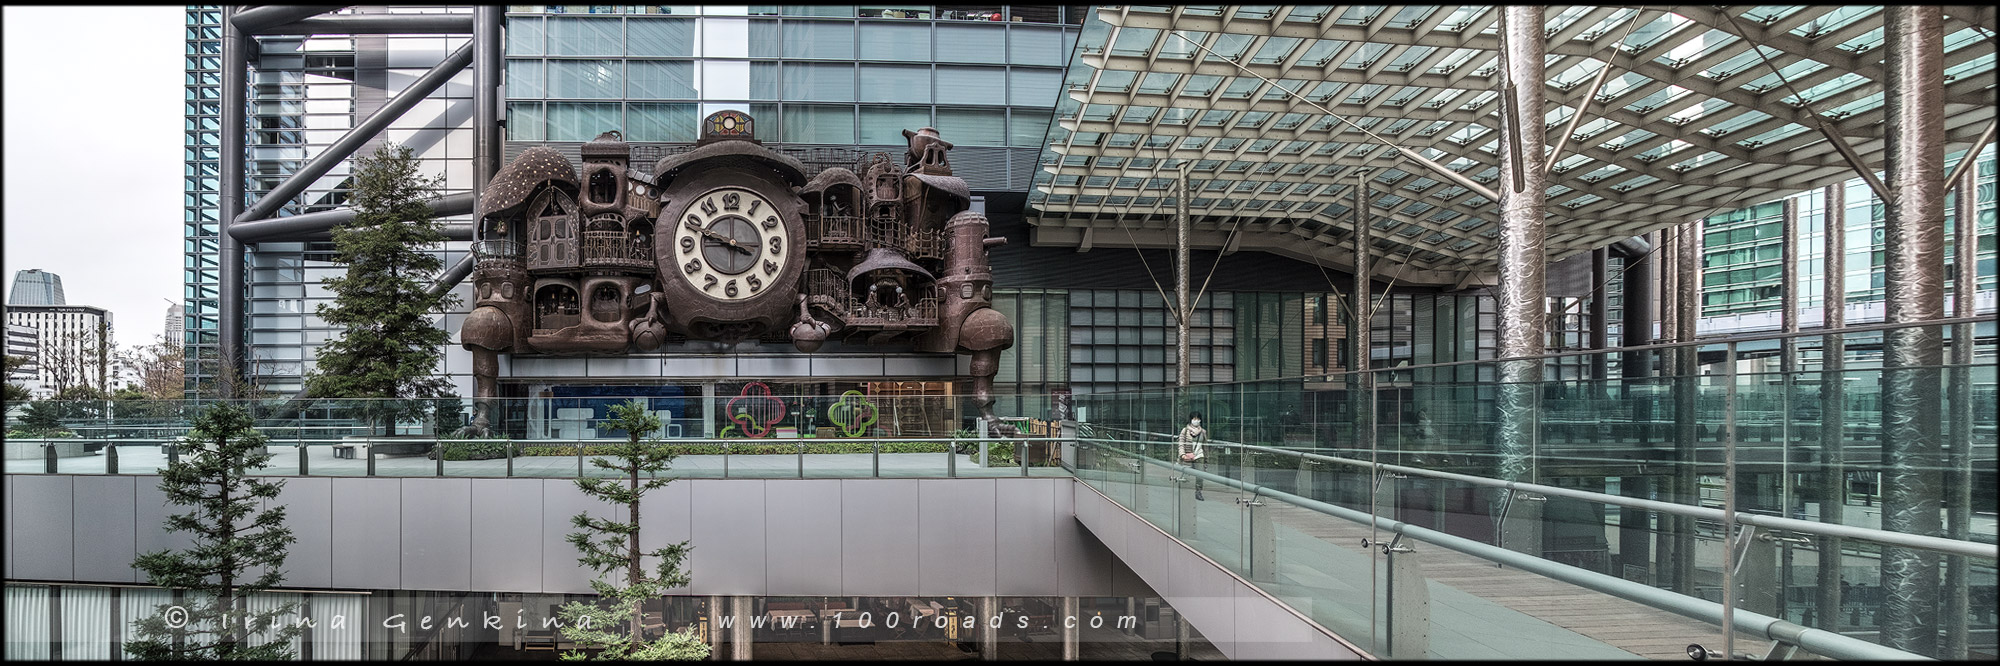 Гигантские часы Гибли, Giant Ghibli Clock, Ni-Tele Really Big Clock, Shiodome, Токио, Tokyo, 東京, Регион Канто, Kanto Region, 関東地方, Хонсю, Honshu Island, 本州, Япония, Japan, 日本)